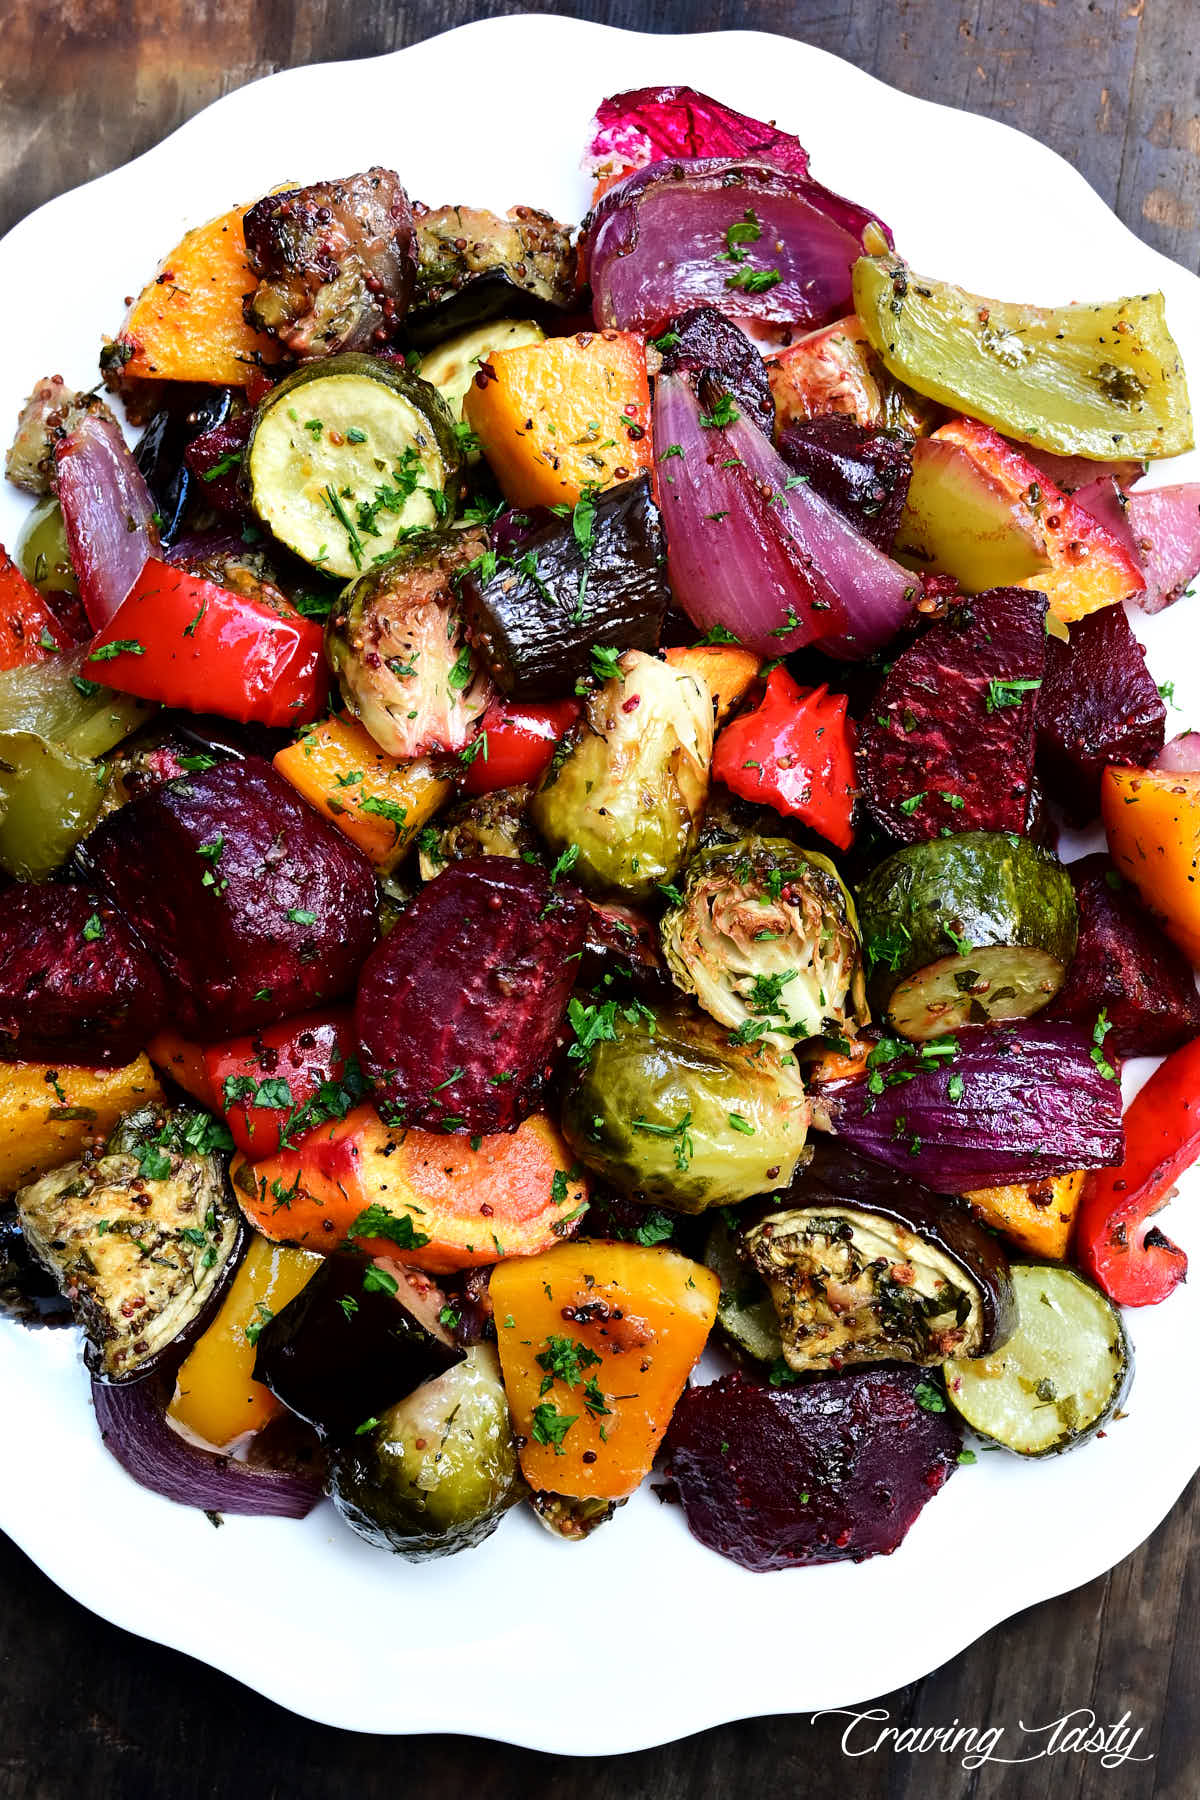 Assorted roasted vegetables on a white plate sprinkled with chopped herbs.